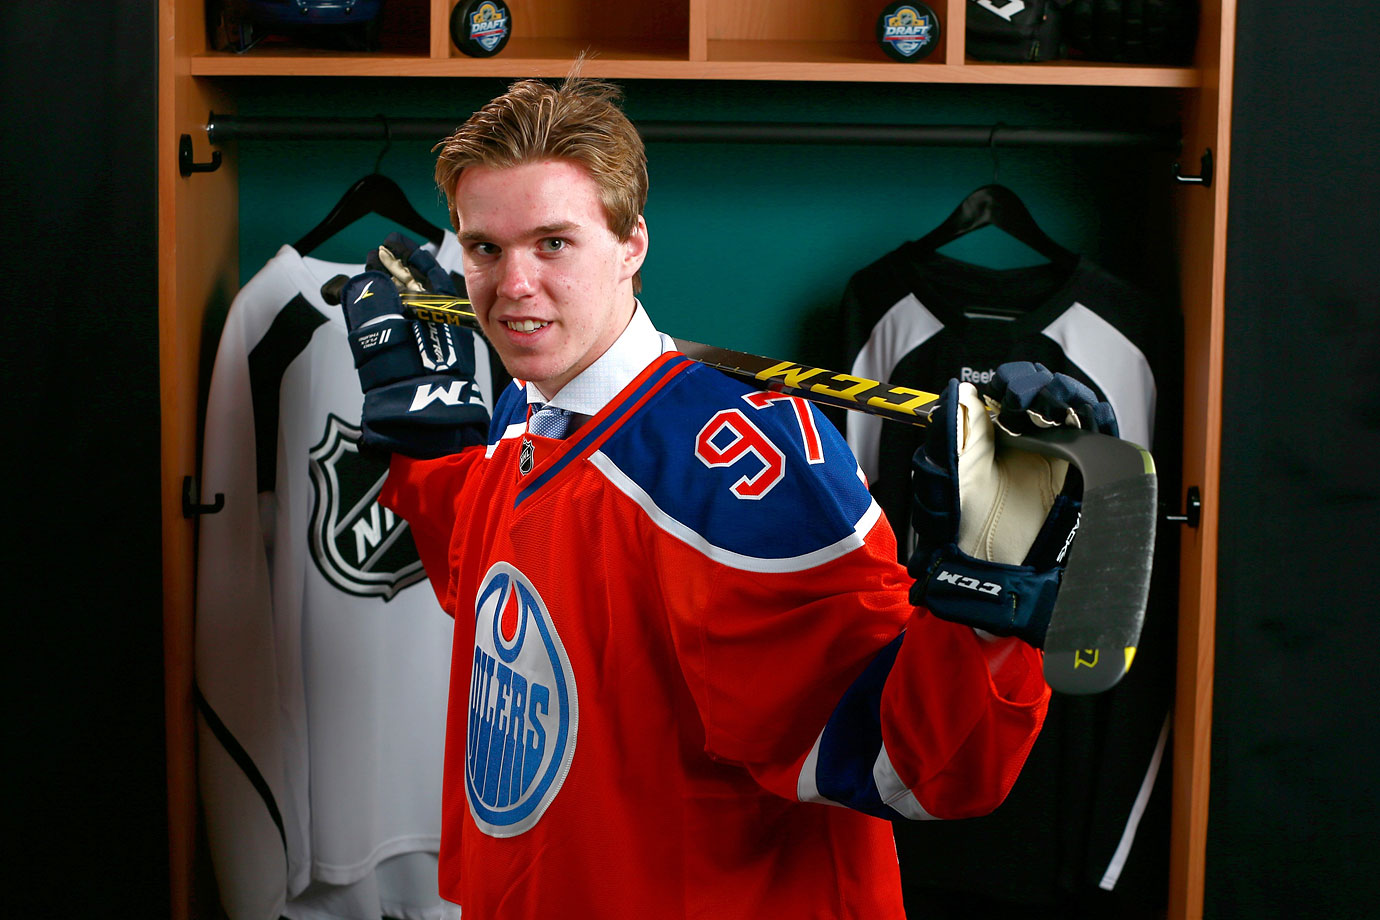 No player has entered the league with such hype since Sidney Crosby a decade ago. Drafting first for the fourth time in the past six seasons, the Oilers added a generational talent in Connor McDavid. The dominant center scored 44 goals and 76 assists for 120 points in just 47 games with the Erie Otters in 2014-15, leading his team to the OHL finals while scoring 21 goals and 28 assists in just 19 playoff games. — Notable picks: No. 2: Jack Eichel, C, Buffalo Sabres | No. 3: Dylan Strome, C, Arizona Coyotes